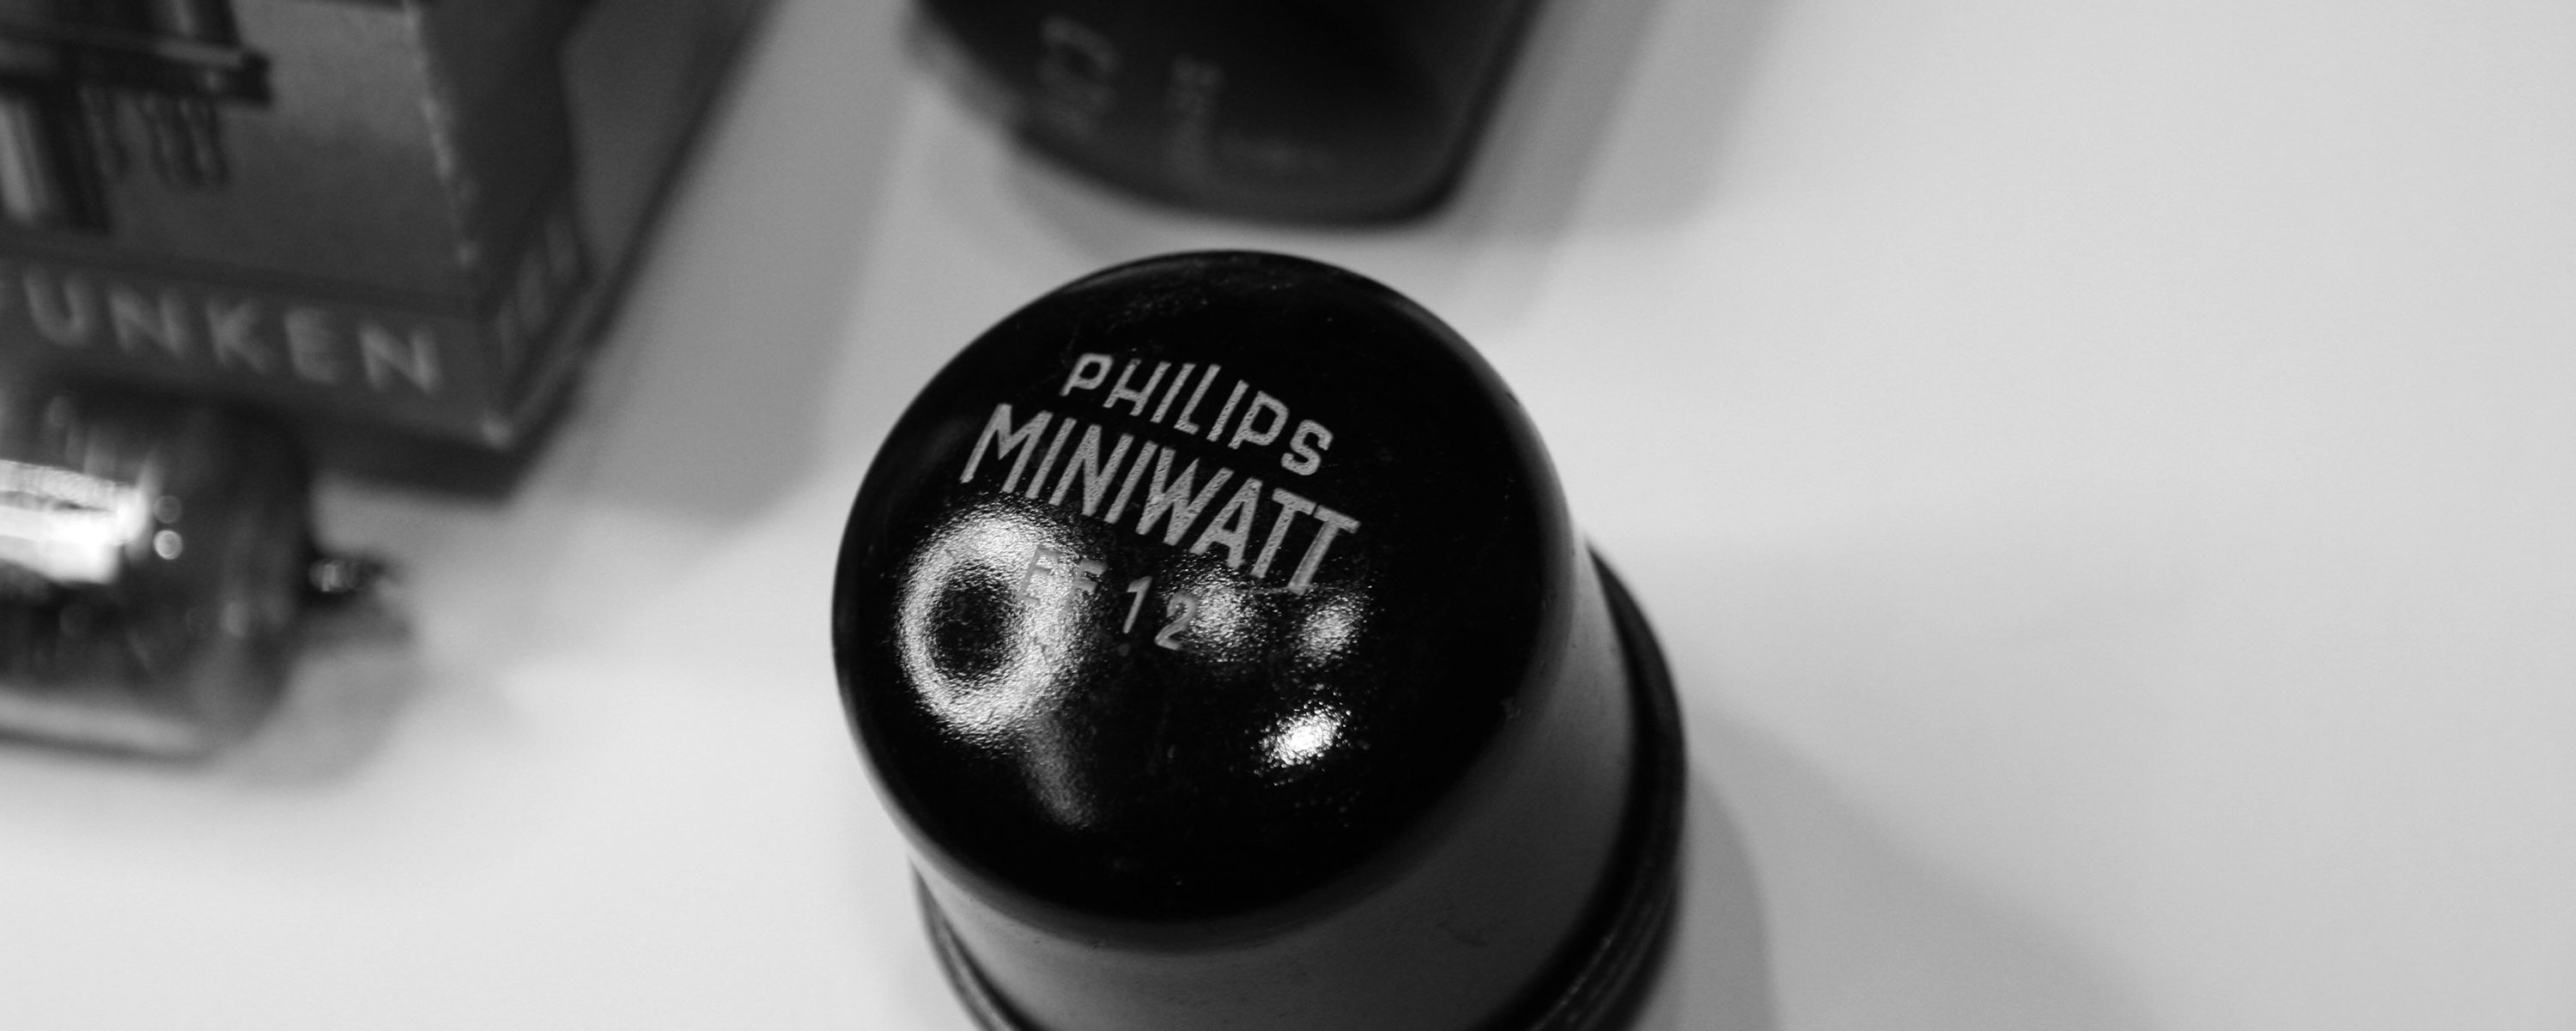 Heule Mikrofon Manufaktur - Philips Tube